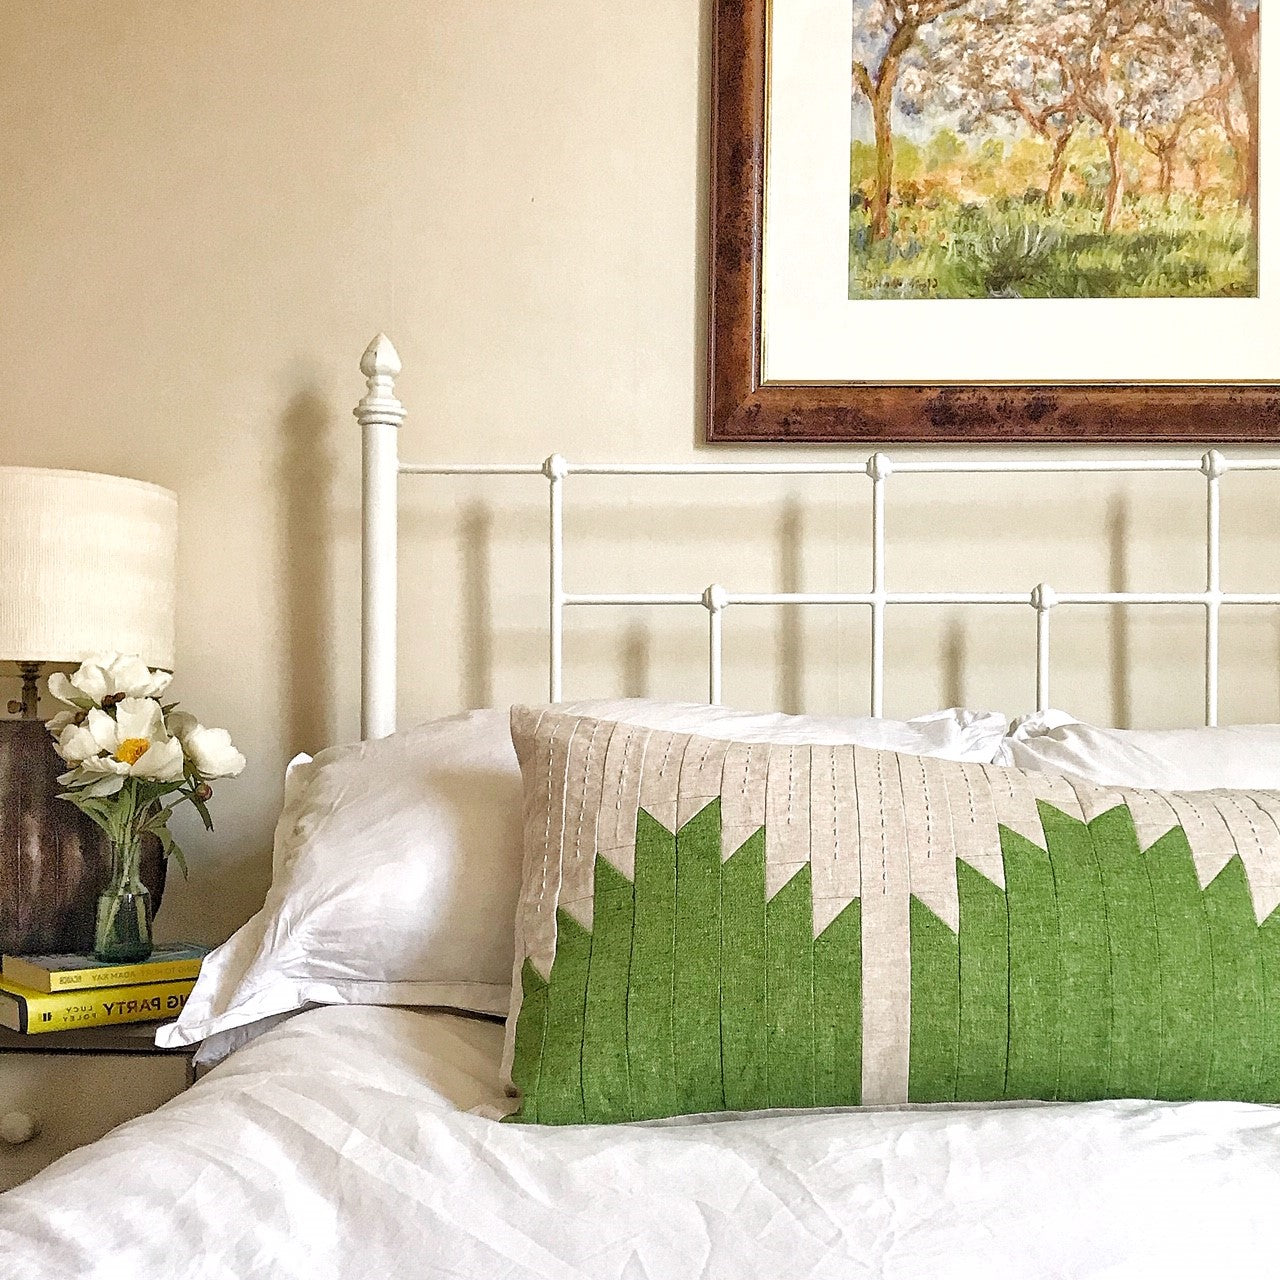 Halle - Patchwork Cushion - Mid Green on Oyster with embroidery detail.